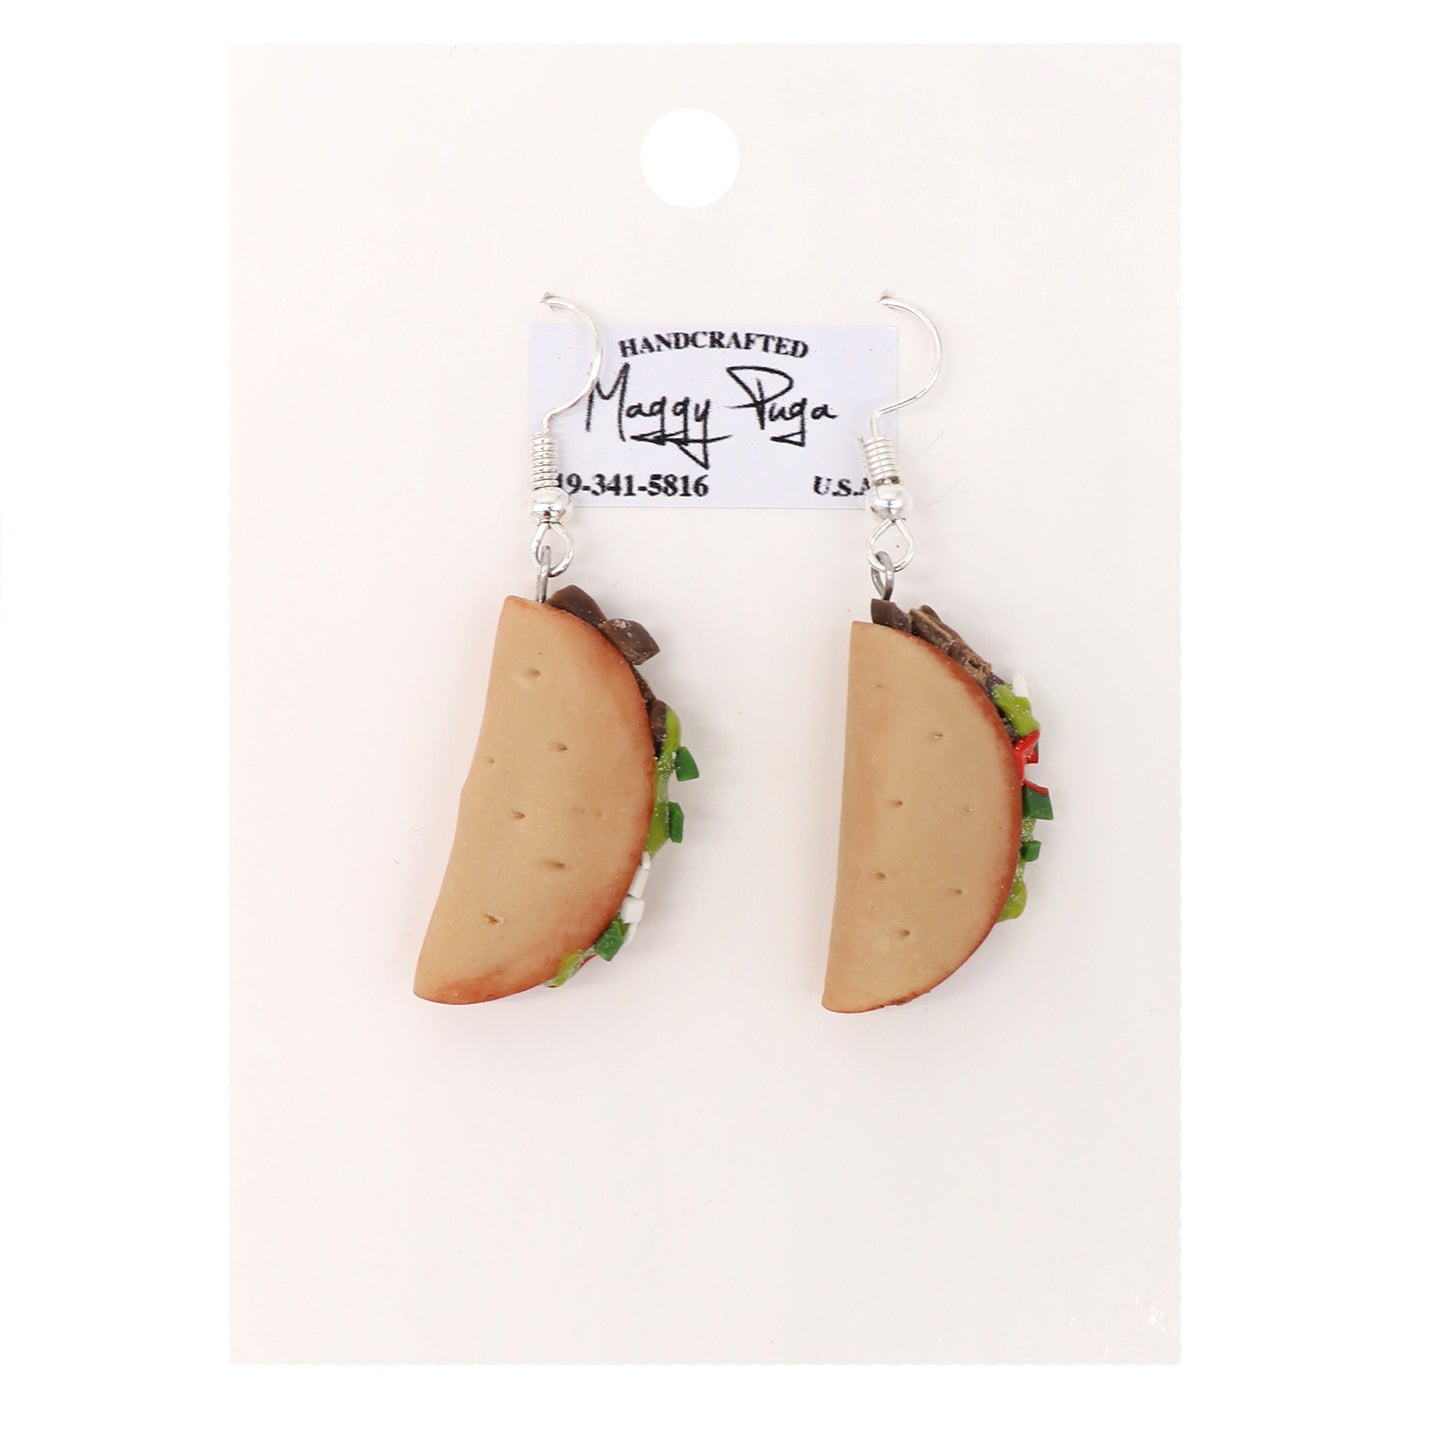 Taco earrings handmade featuring a corn tortilla, meat, salsa and sour cream. Handcrafted by small shop Maggy Puga and sold by SDTrading.